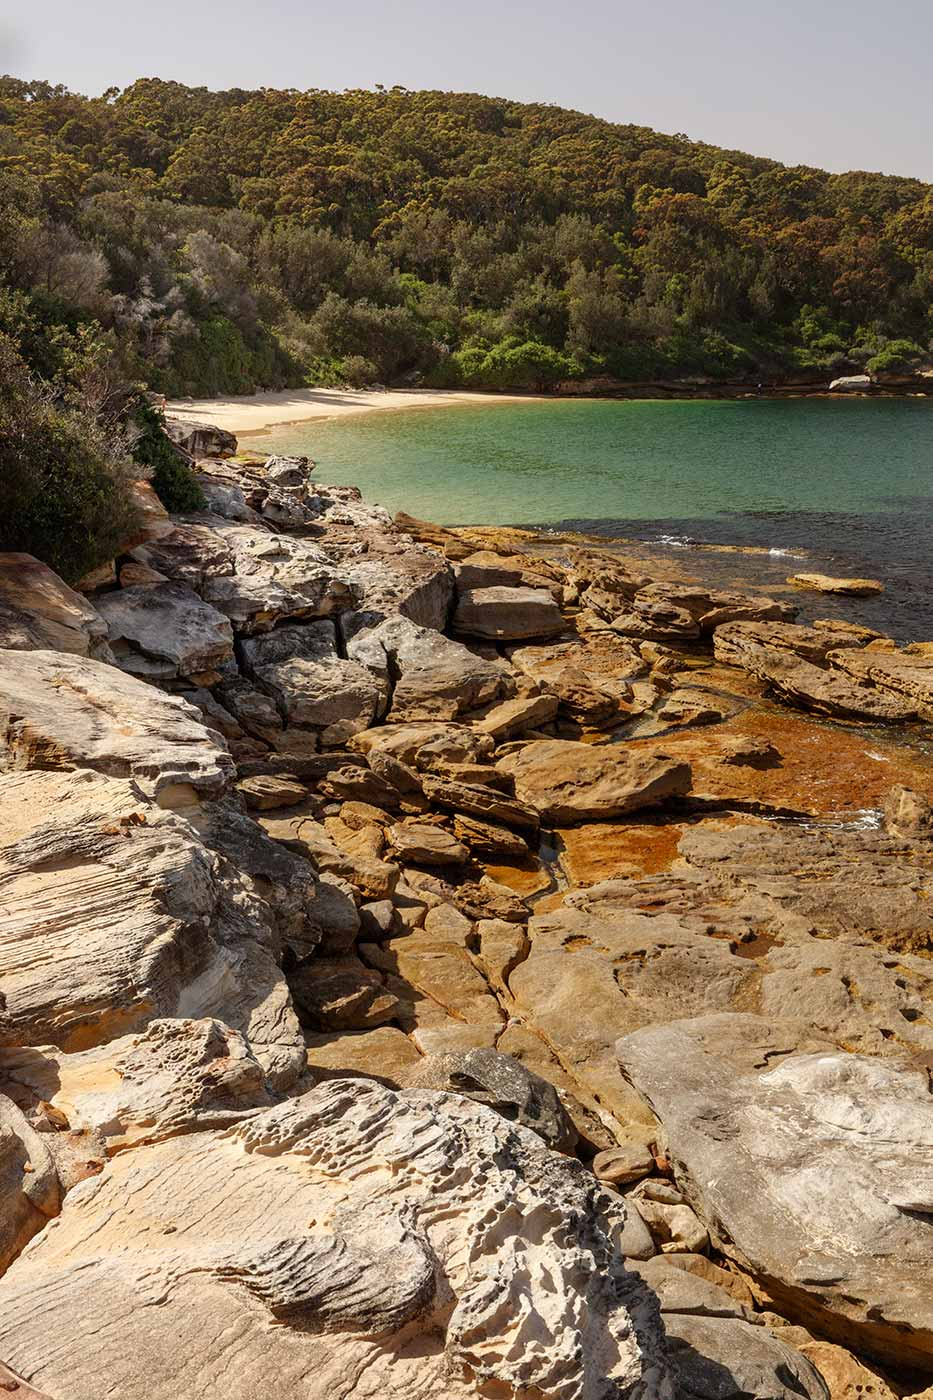 Colour photograph of beach cove featuring rocks and dense vegetation. - click to view larger image